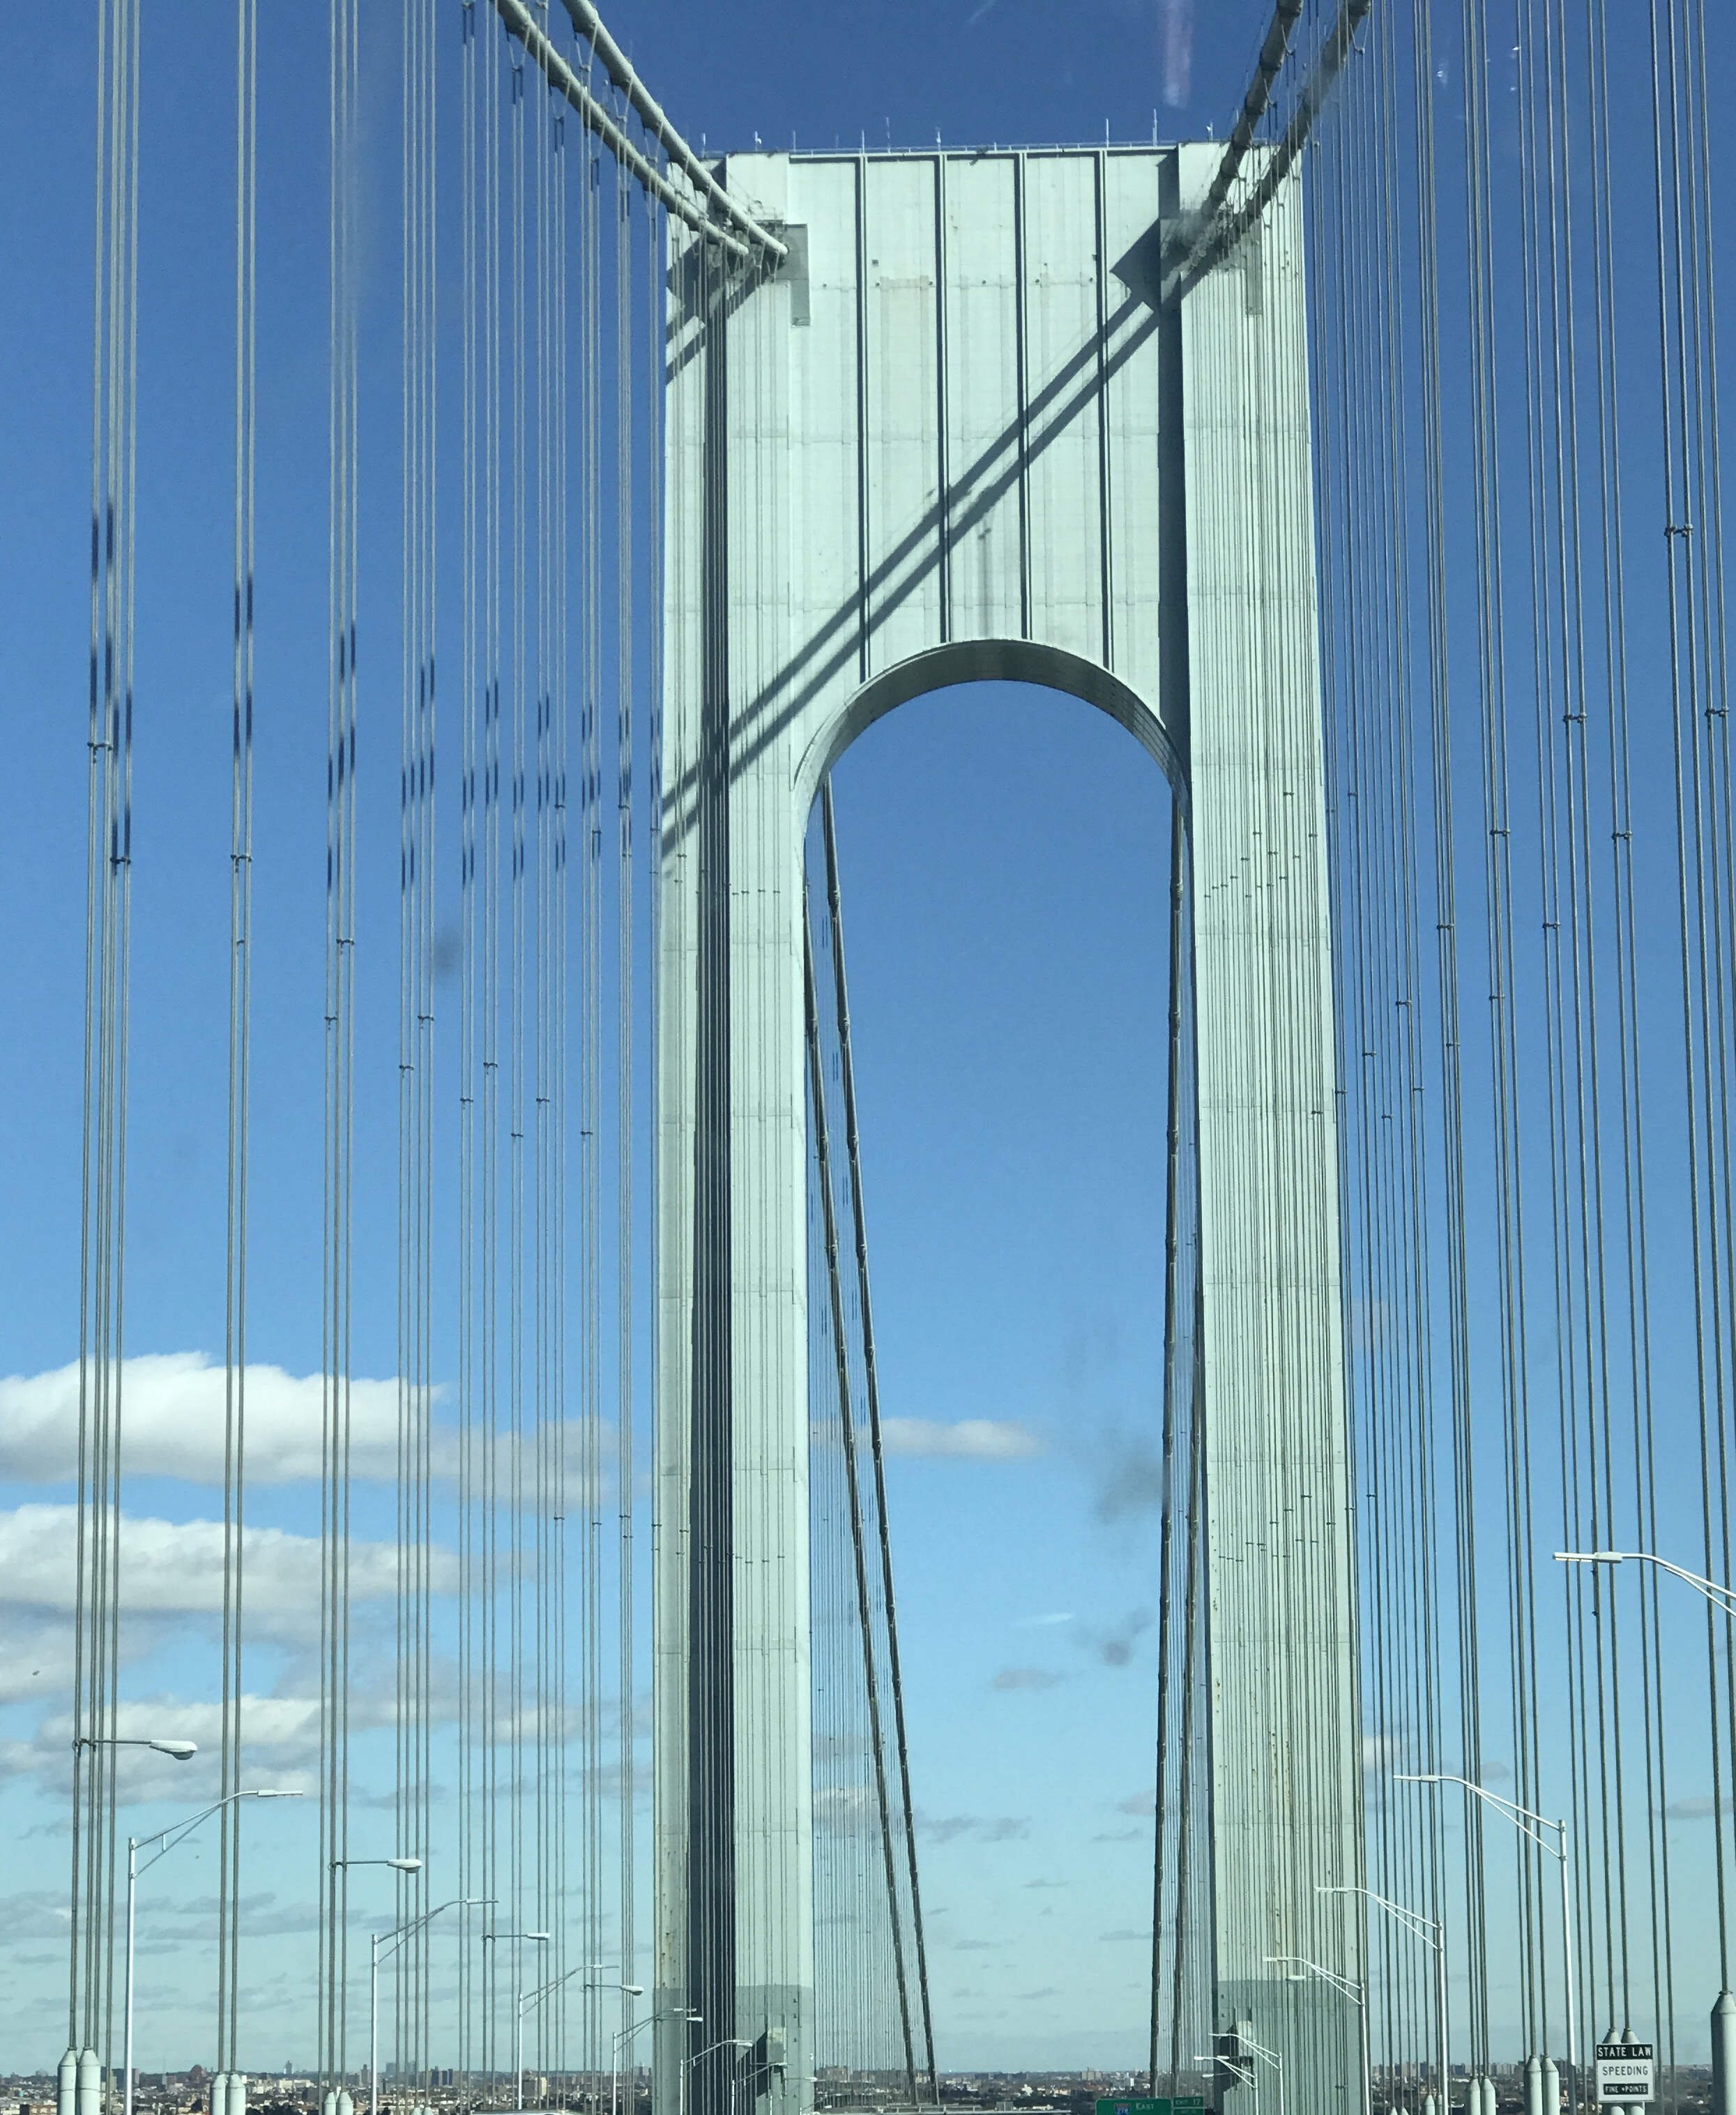 A shot of the Verrazano bridge when we were returning from a recent road trip from seeing my family in Tennessee and Alabama.